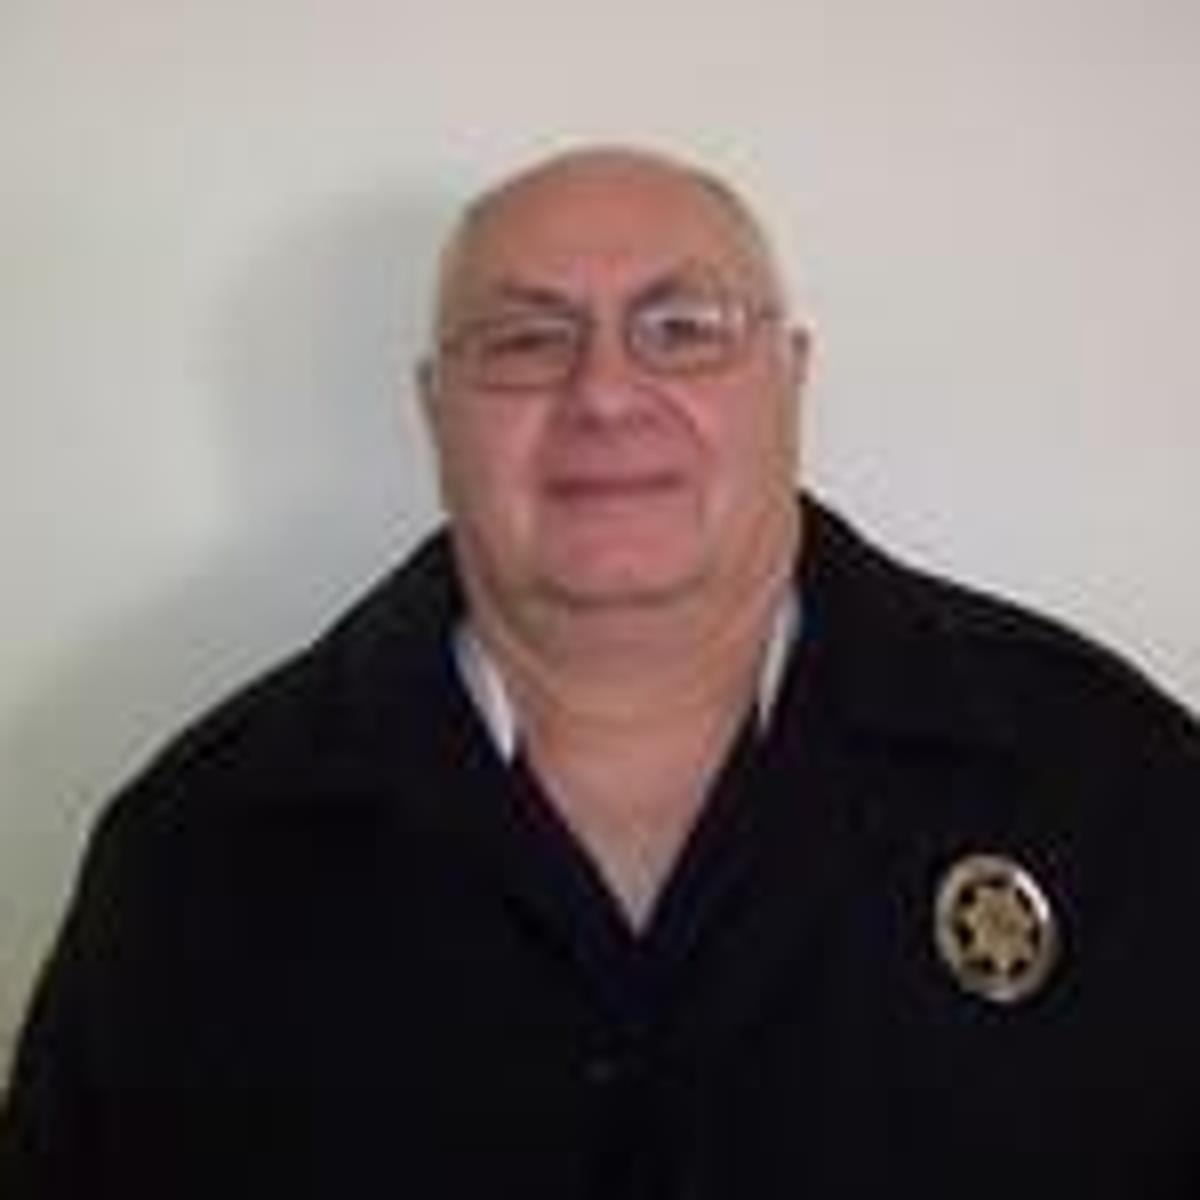 Ex-Whitewood police chief awaits sentencing after pleading